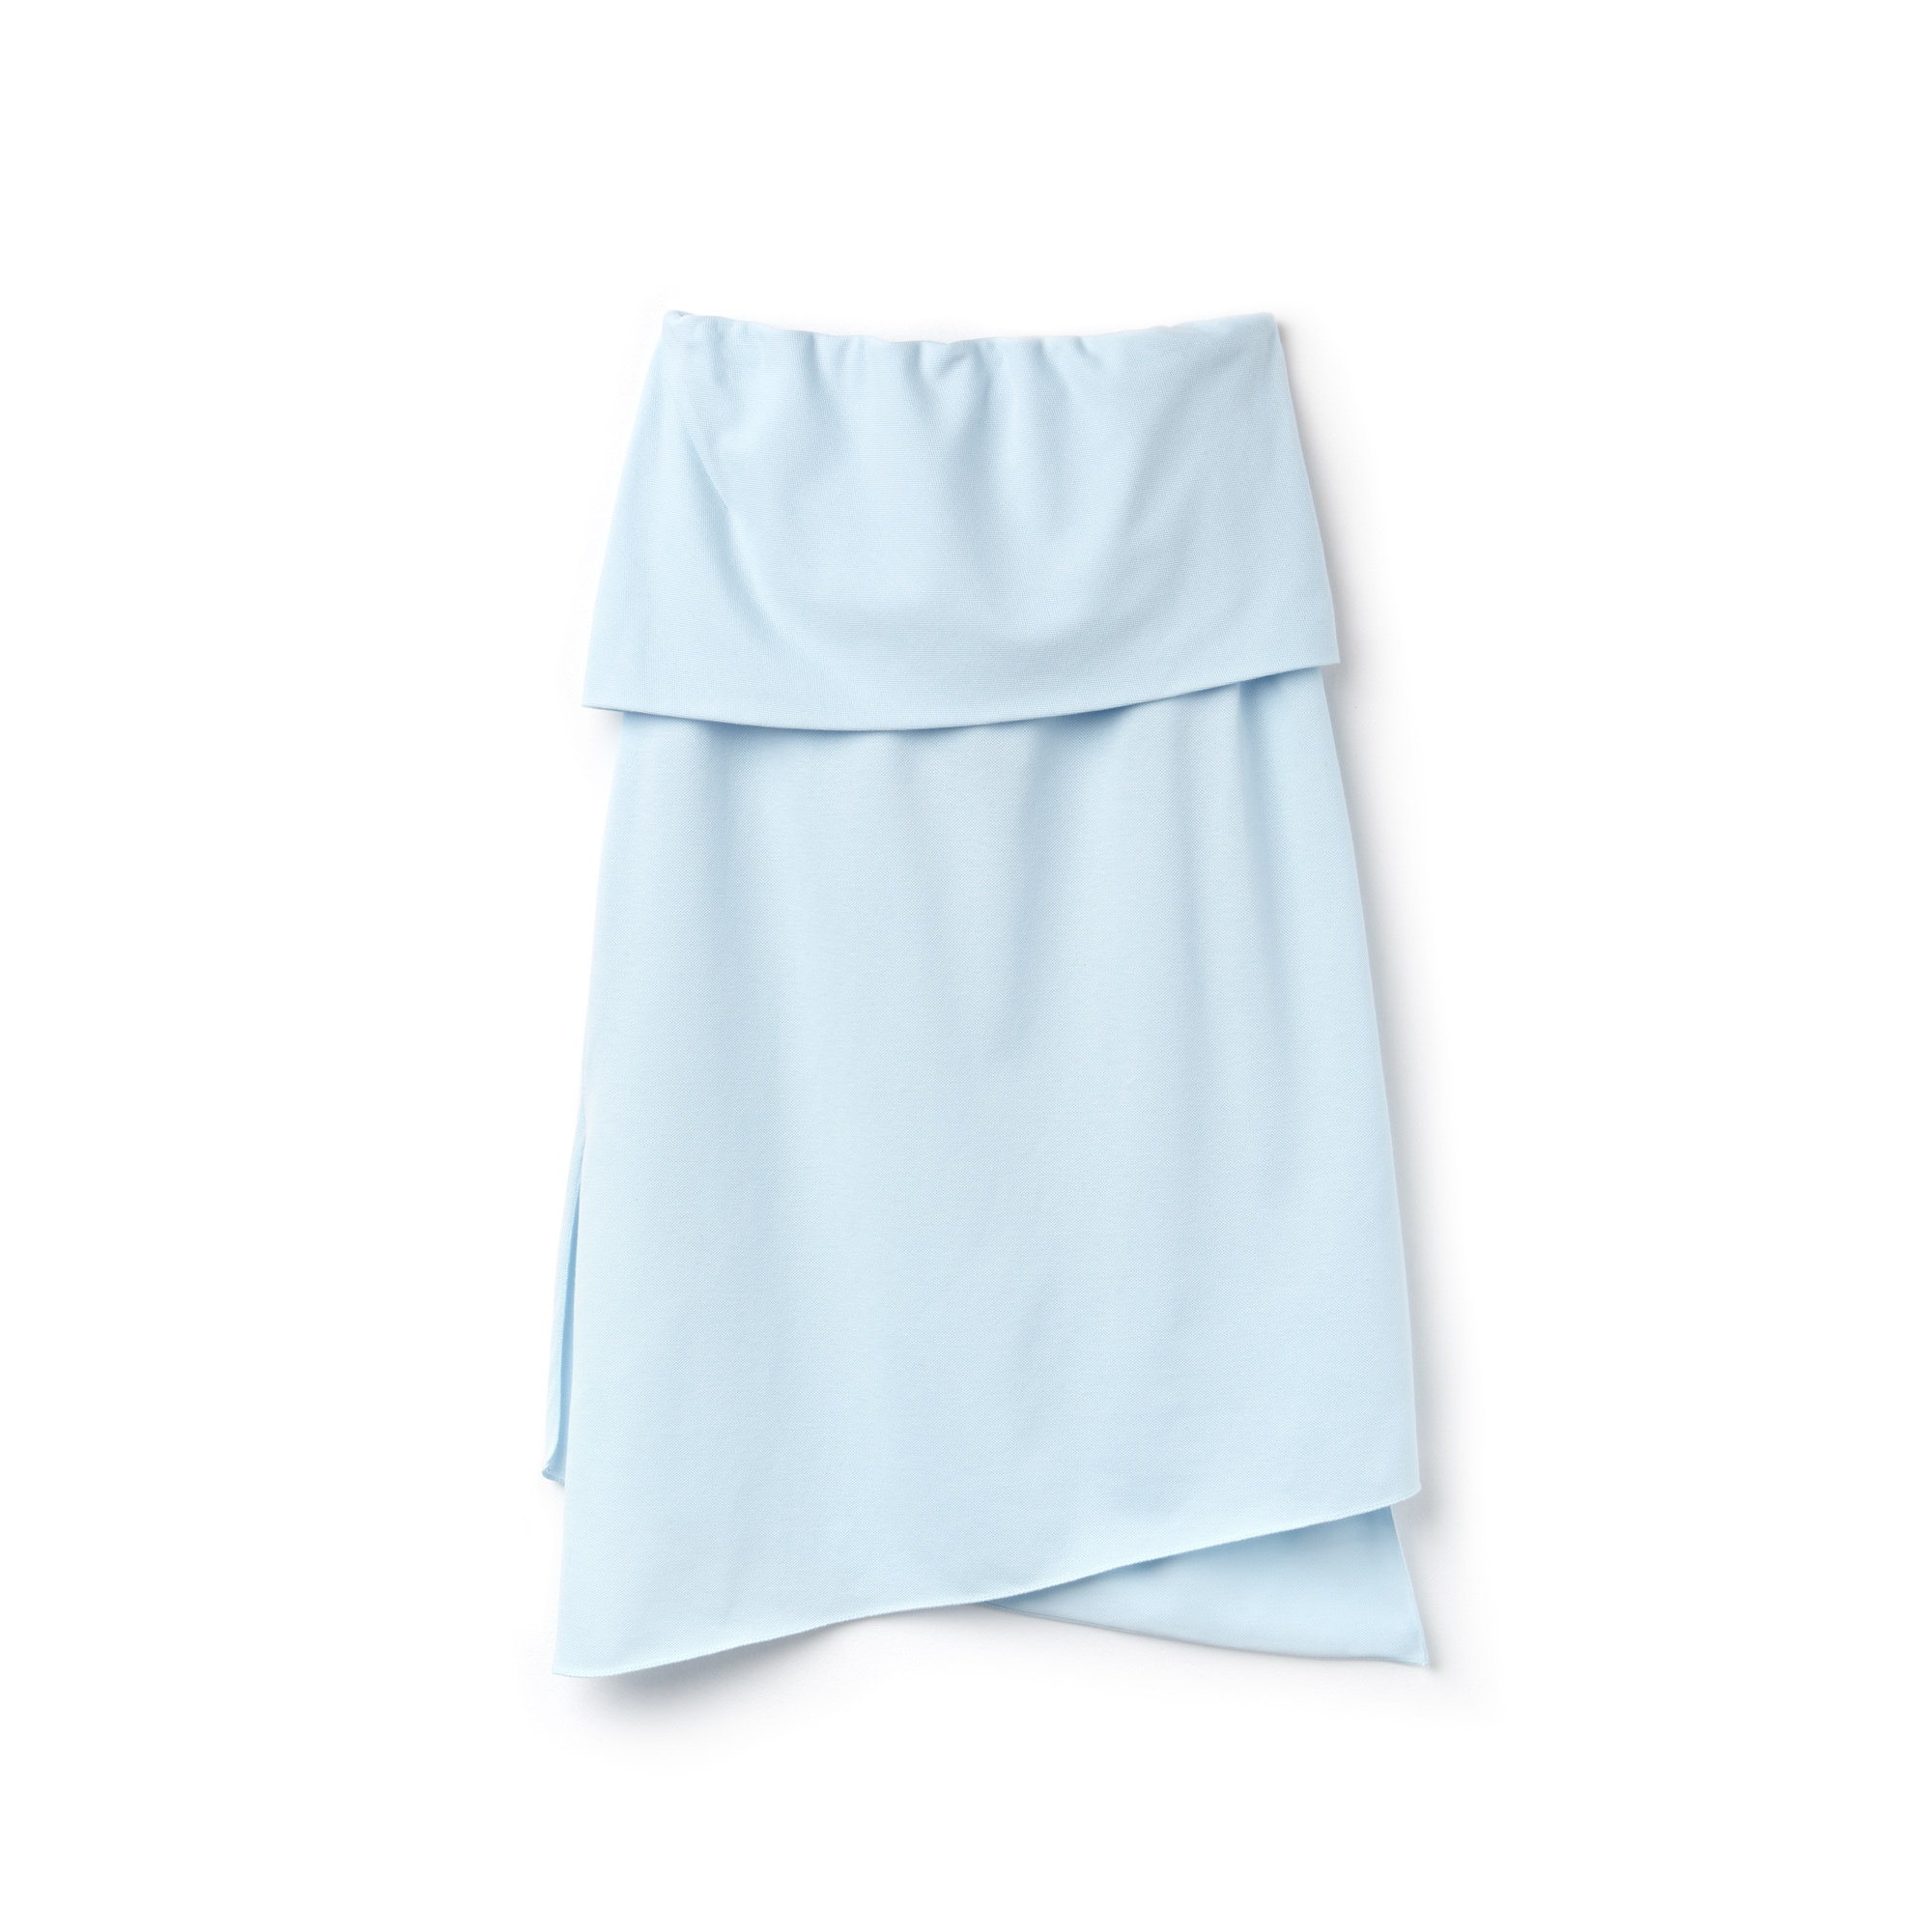 Women's Fashion Show Asymmetrical Twisted Cotton Piqué Skirt